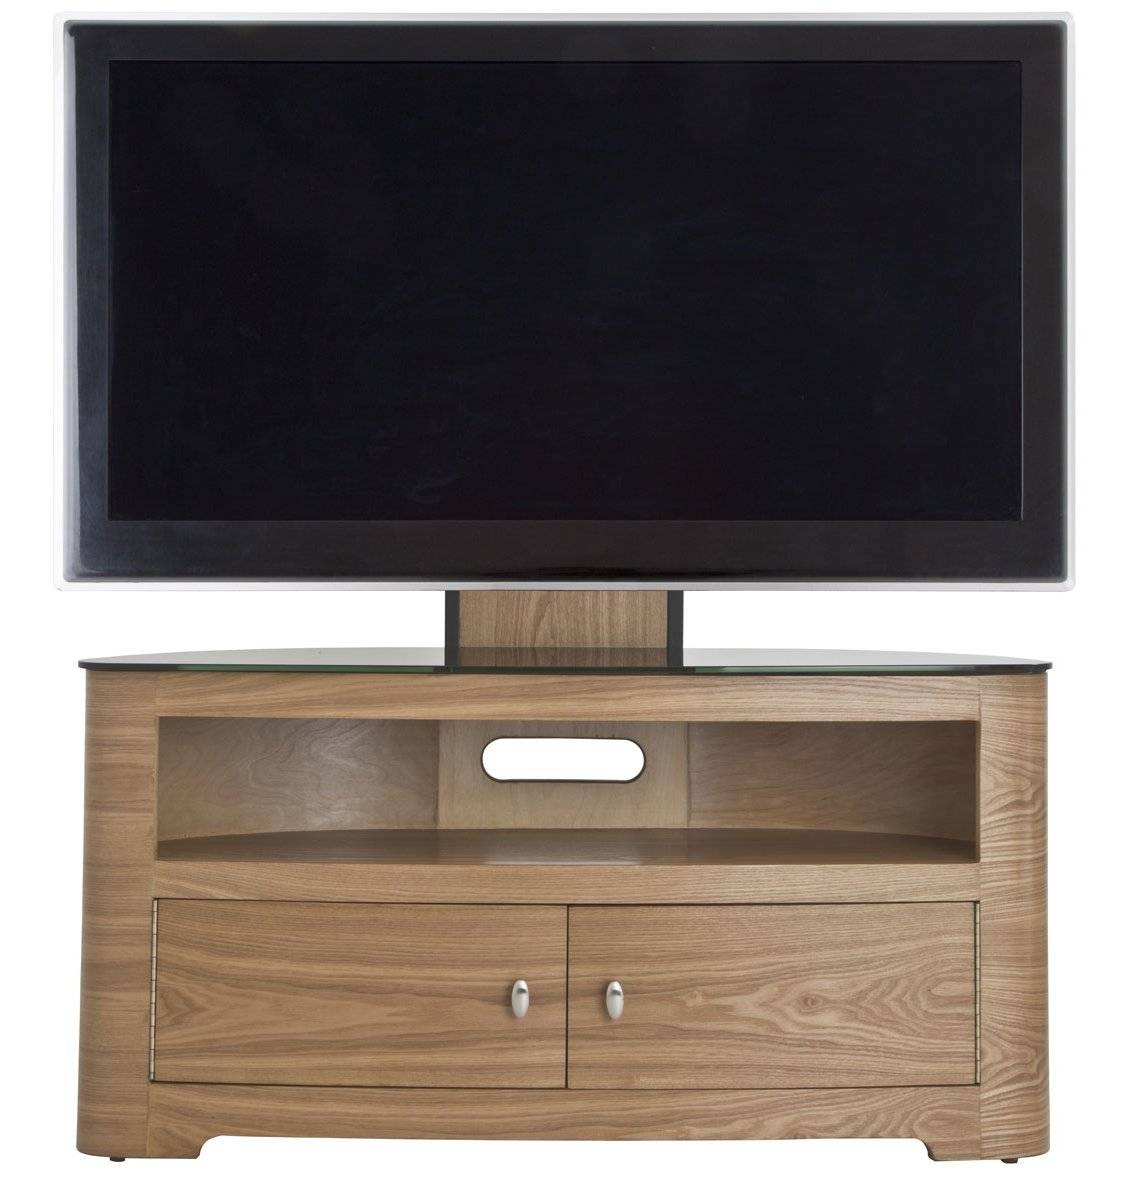 Brown Varnished Maple Wood Tv Stand With Mount Using Double Swing inside Maple Wood Tv Stands (Image 1 of 15)